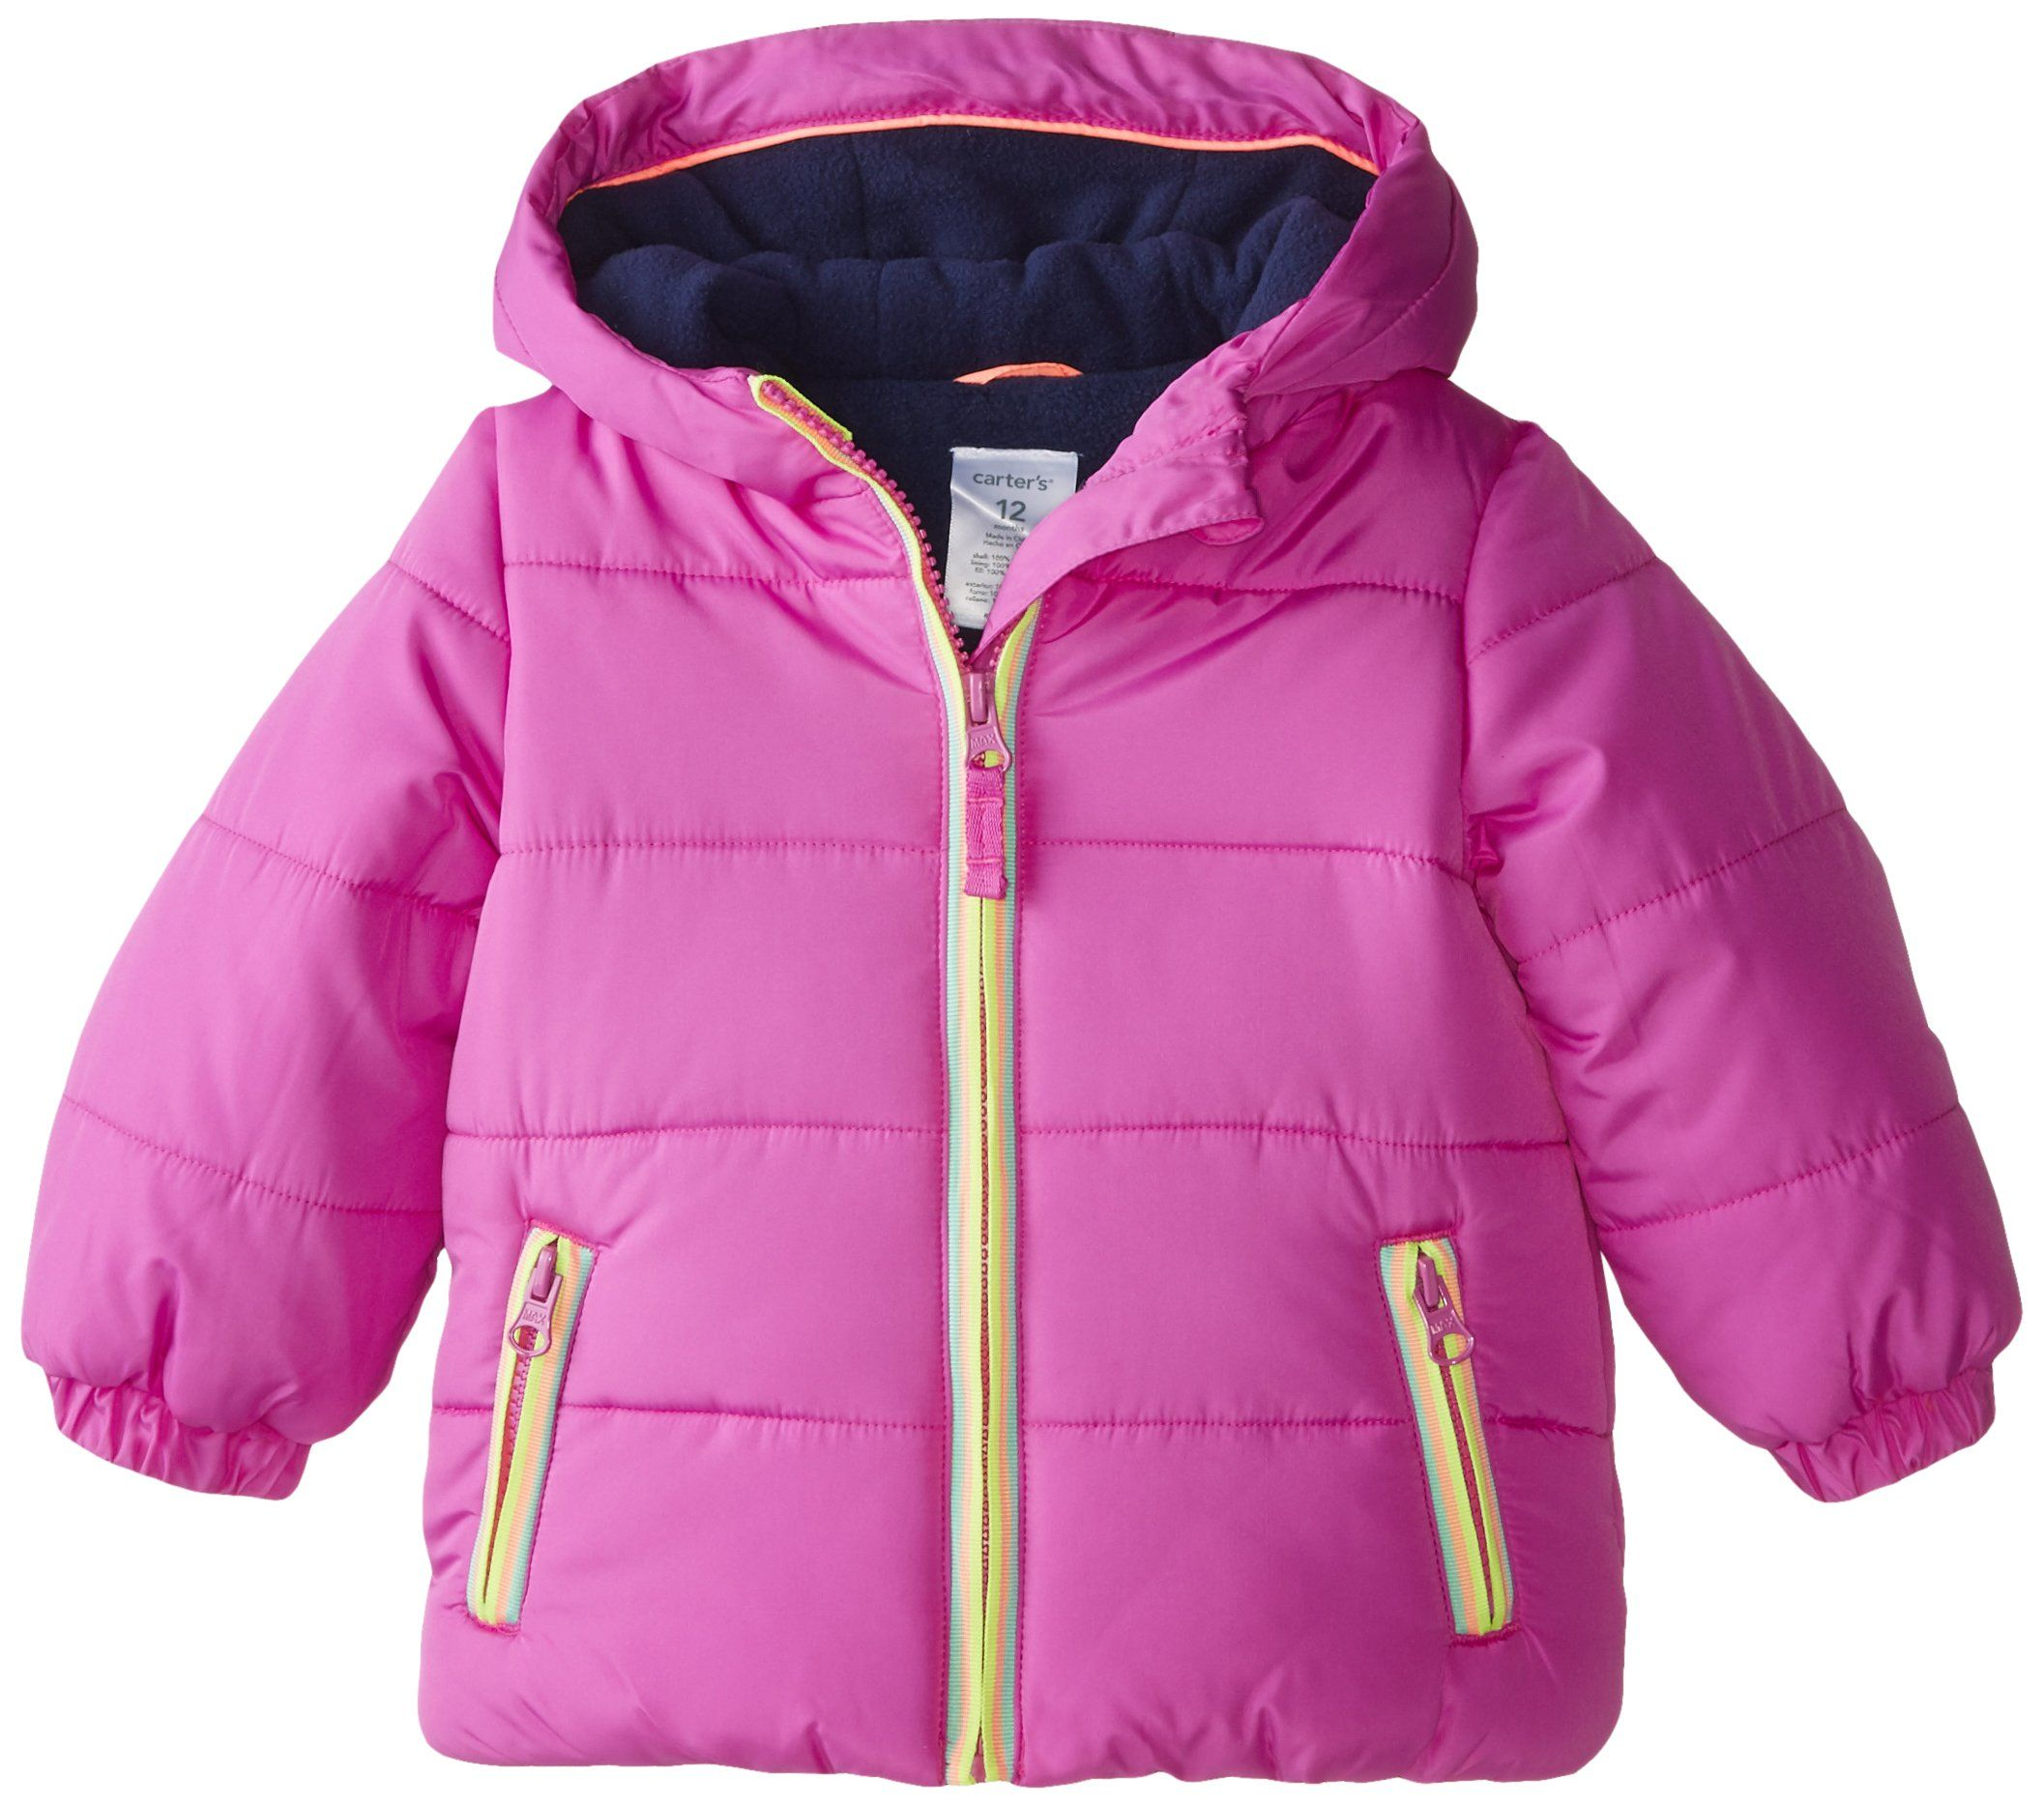 aa90bf767 Carter s Baby Girls  Heavyweight Jacket